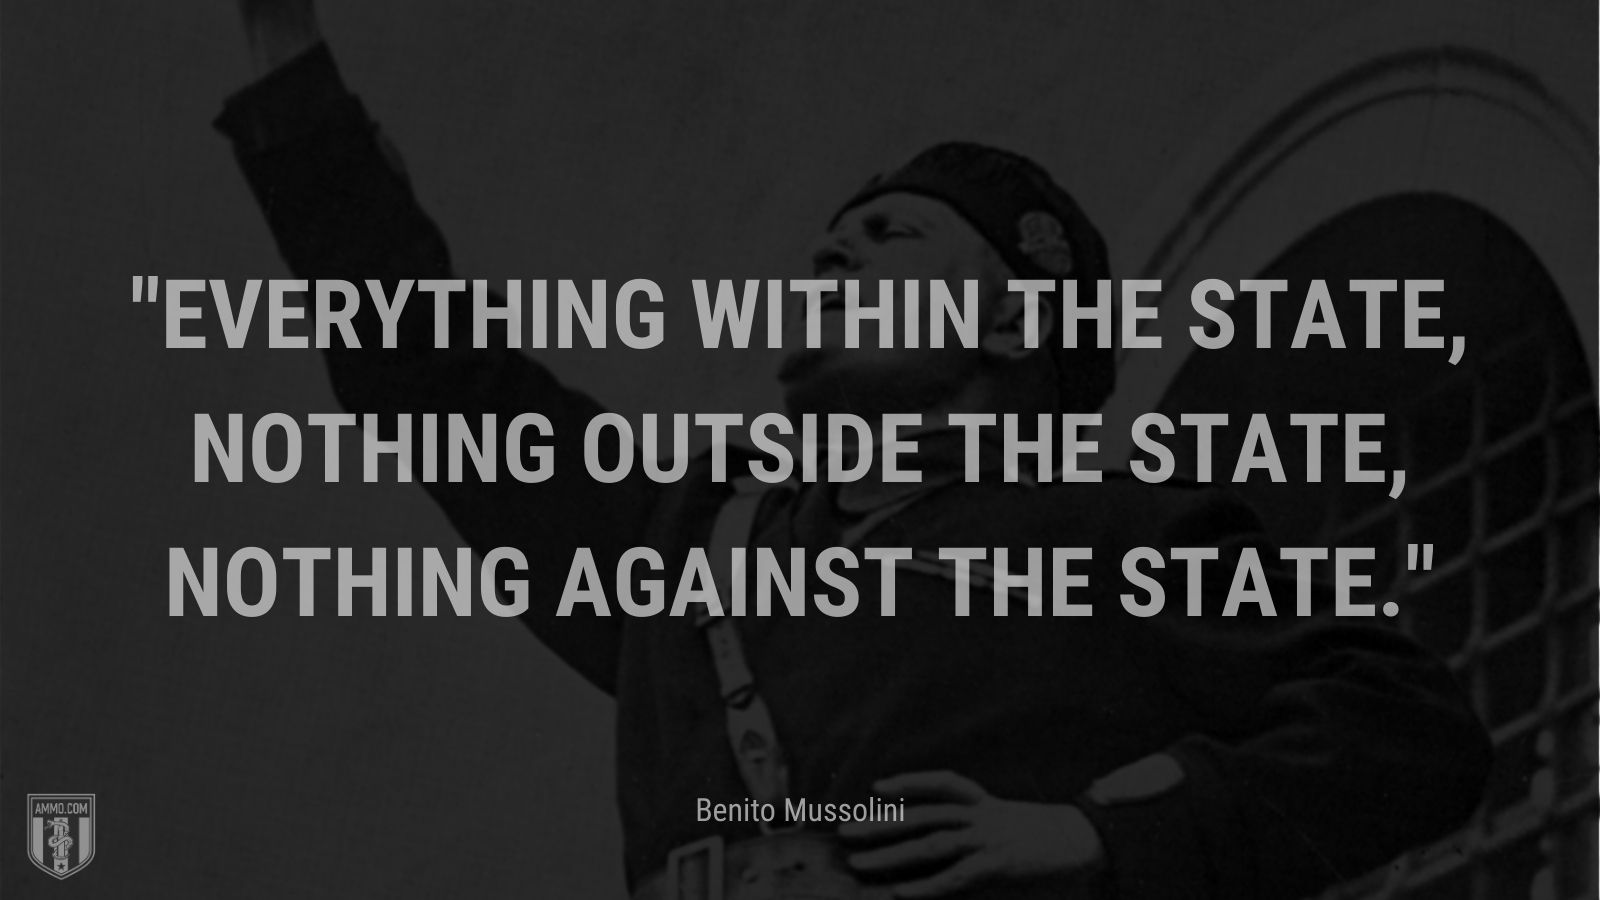 """""""Everything within the State, nothing outside the State, nothing against the State."""" - Benito Mussolini"""